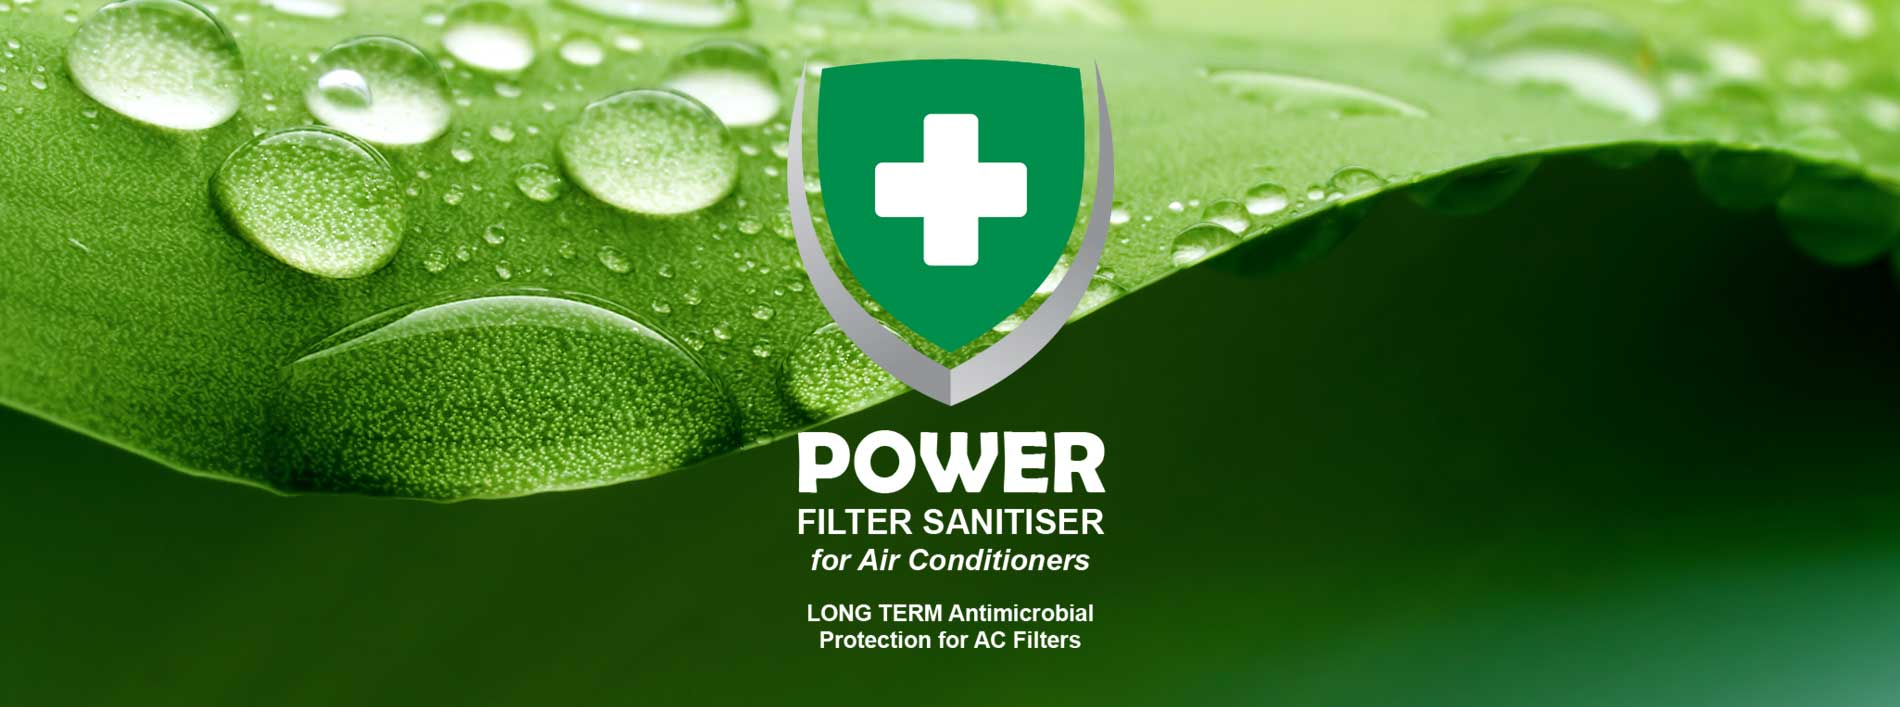 Power Technologies POWER Hand and Surface Sanitiser by Promek